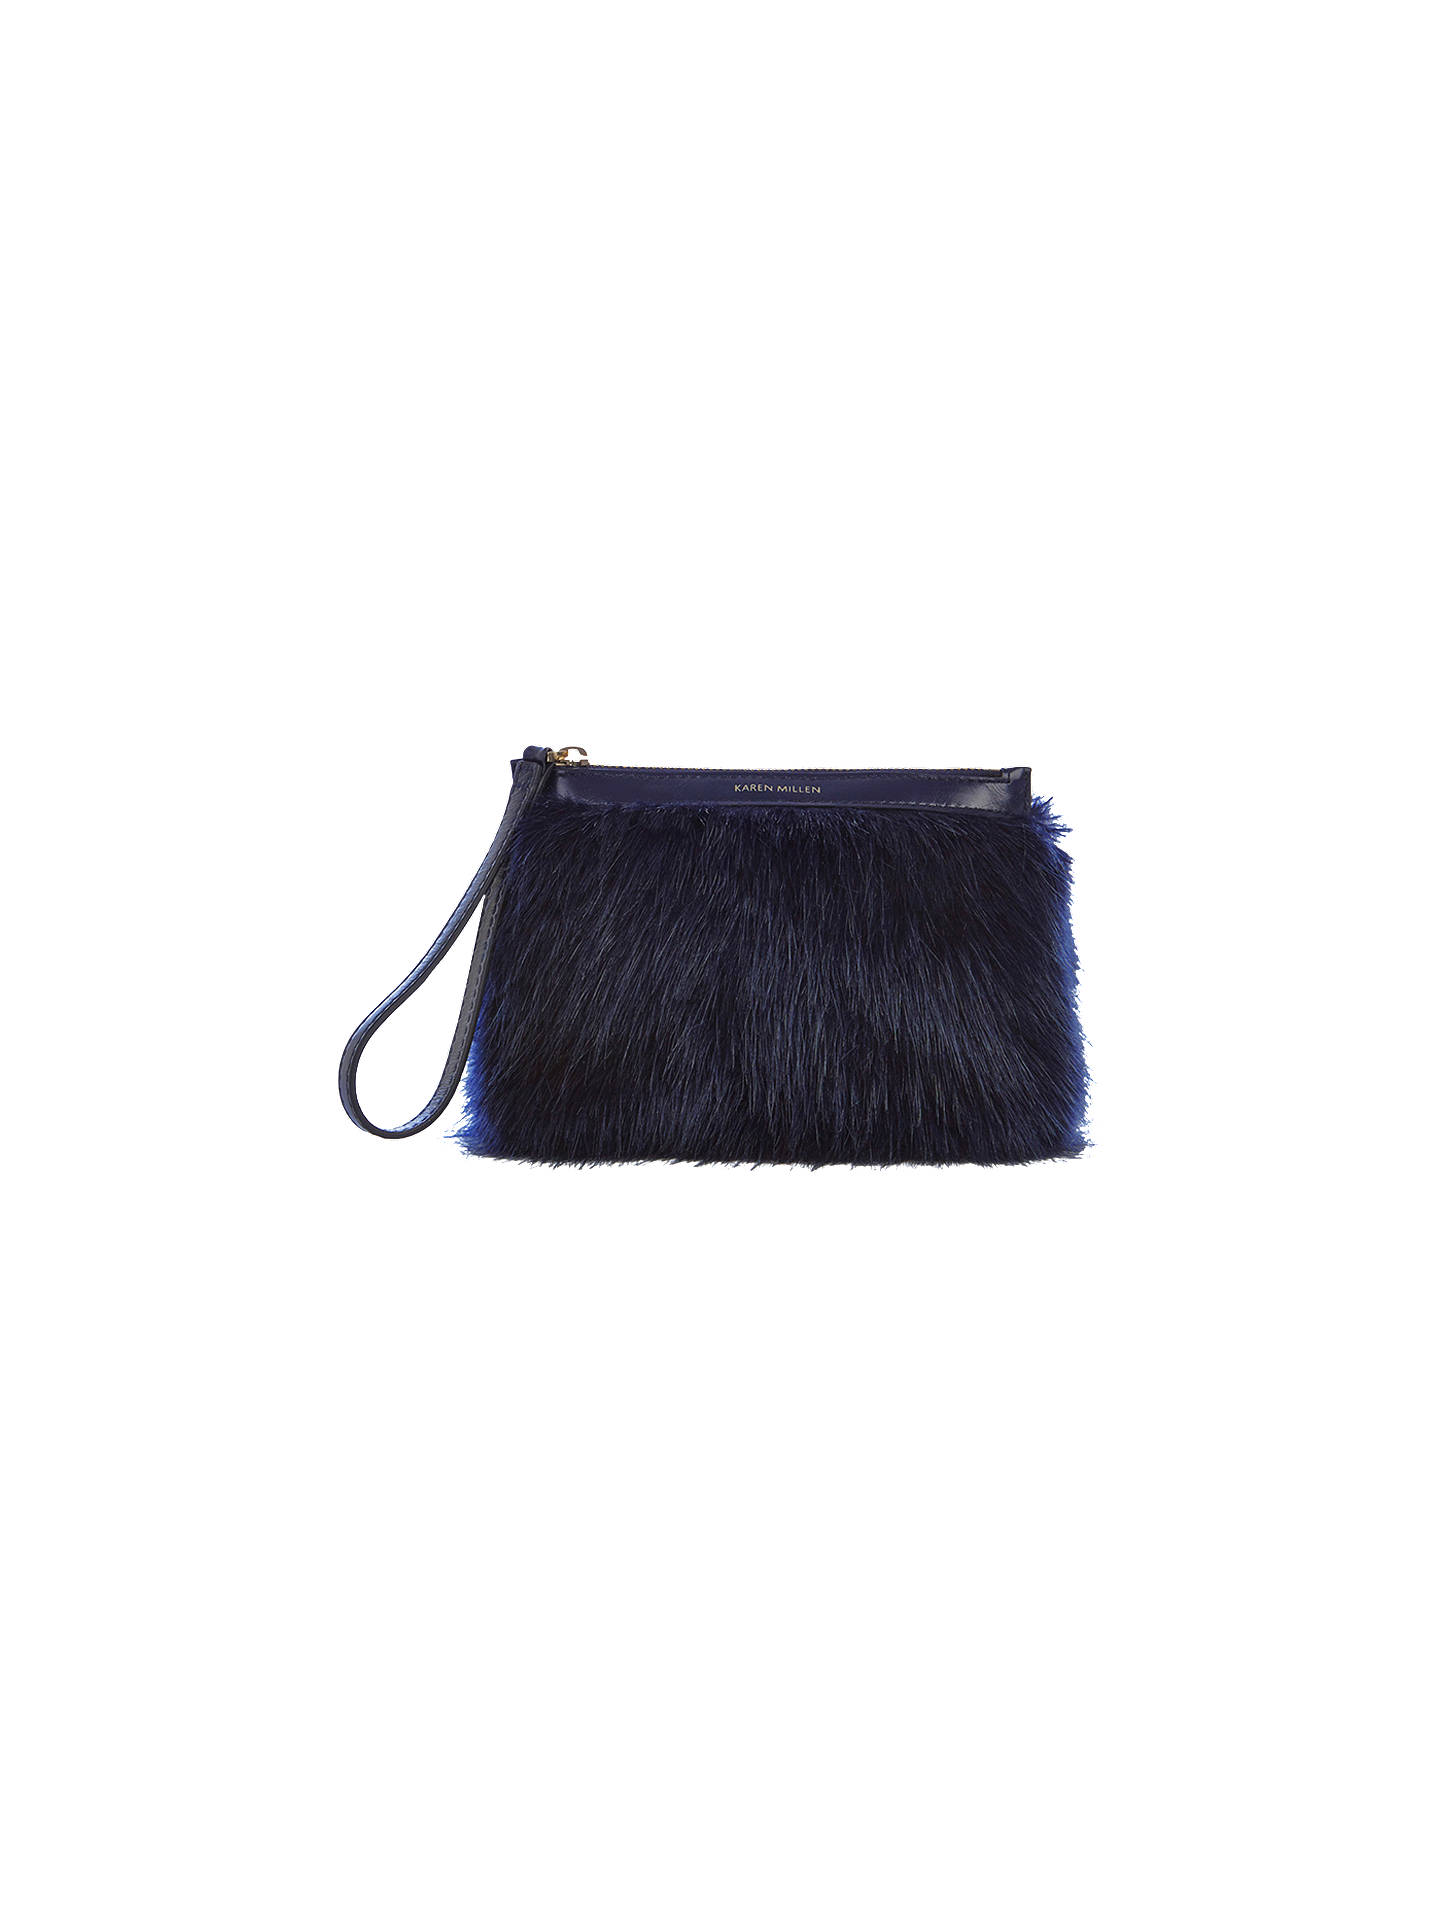 ffb49bc4dd5 Buy Karen Millen Faux Fur Pochette Clutch Bag, Blue Online at johnlewis.com  ...